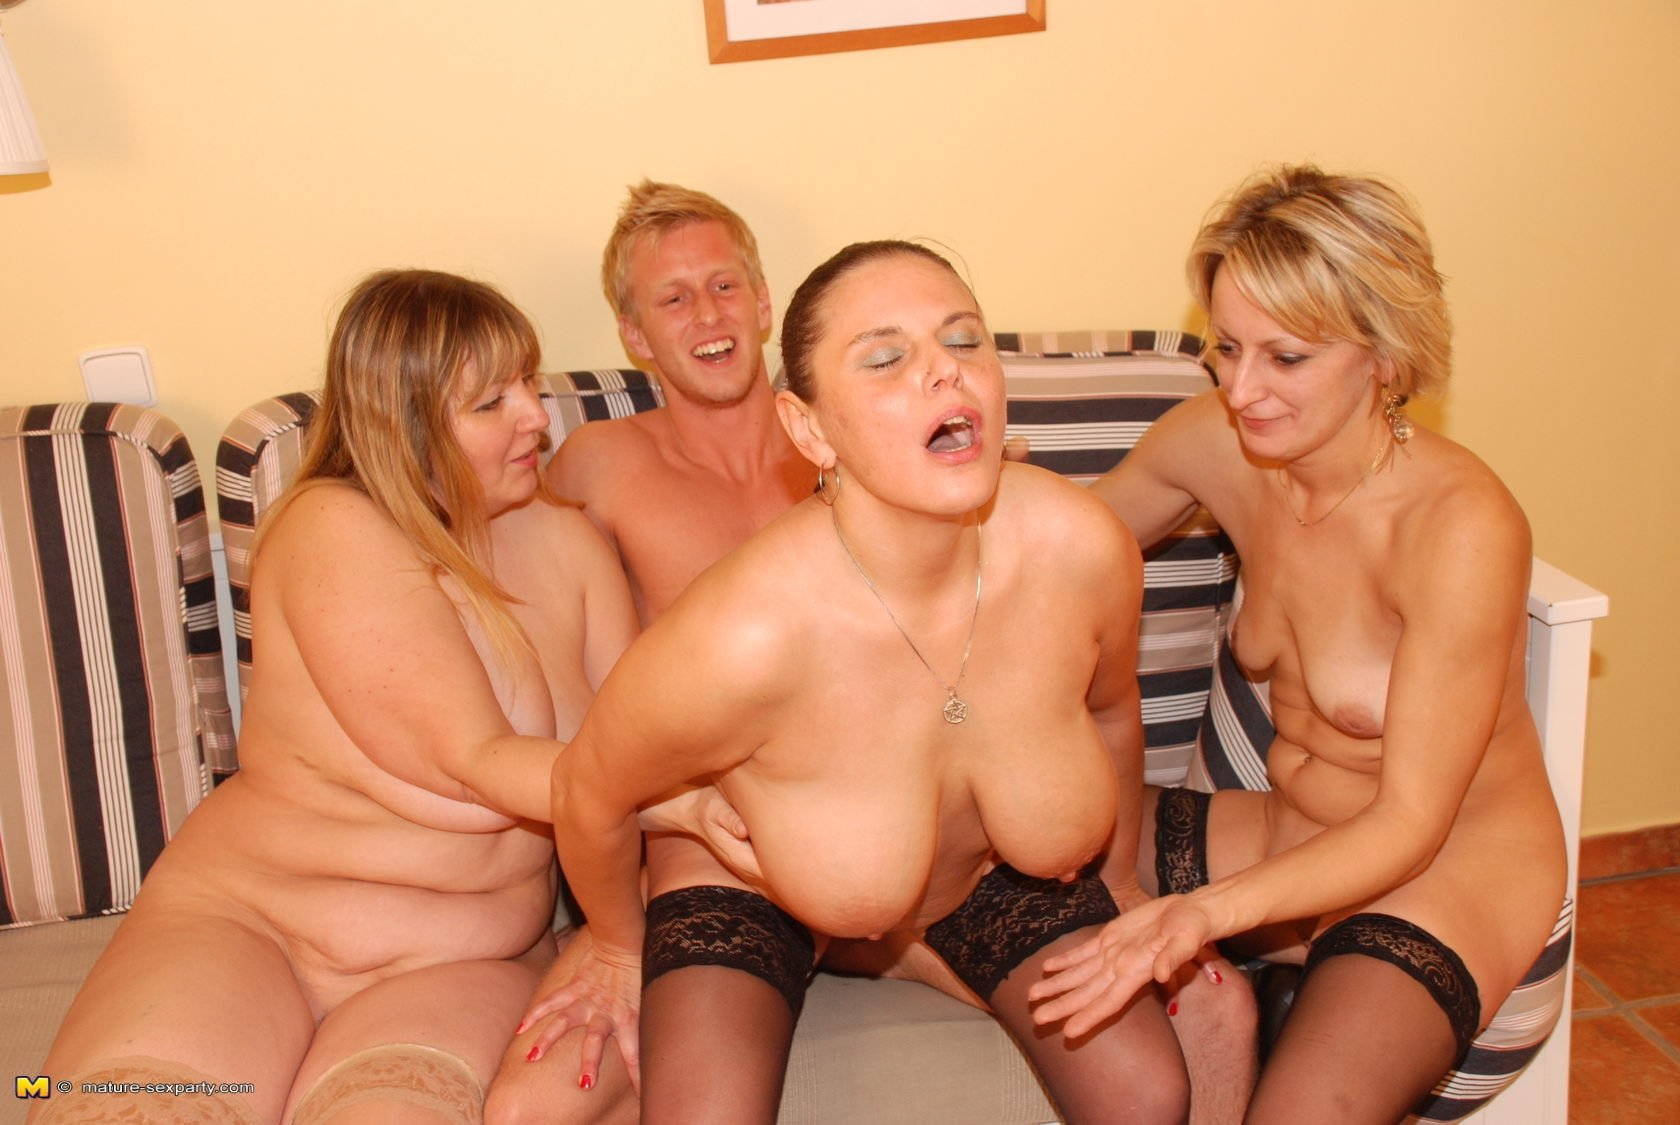 Nude group moms and boy — photo 3